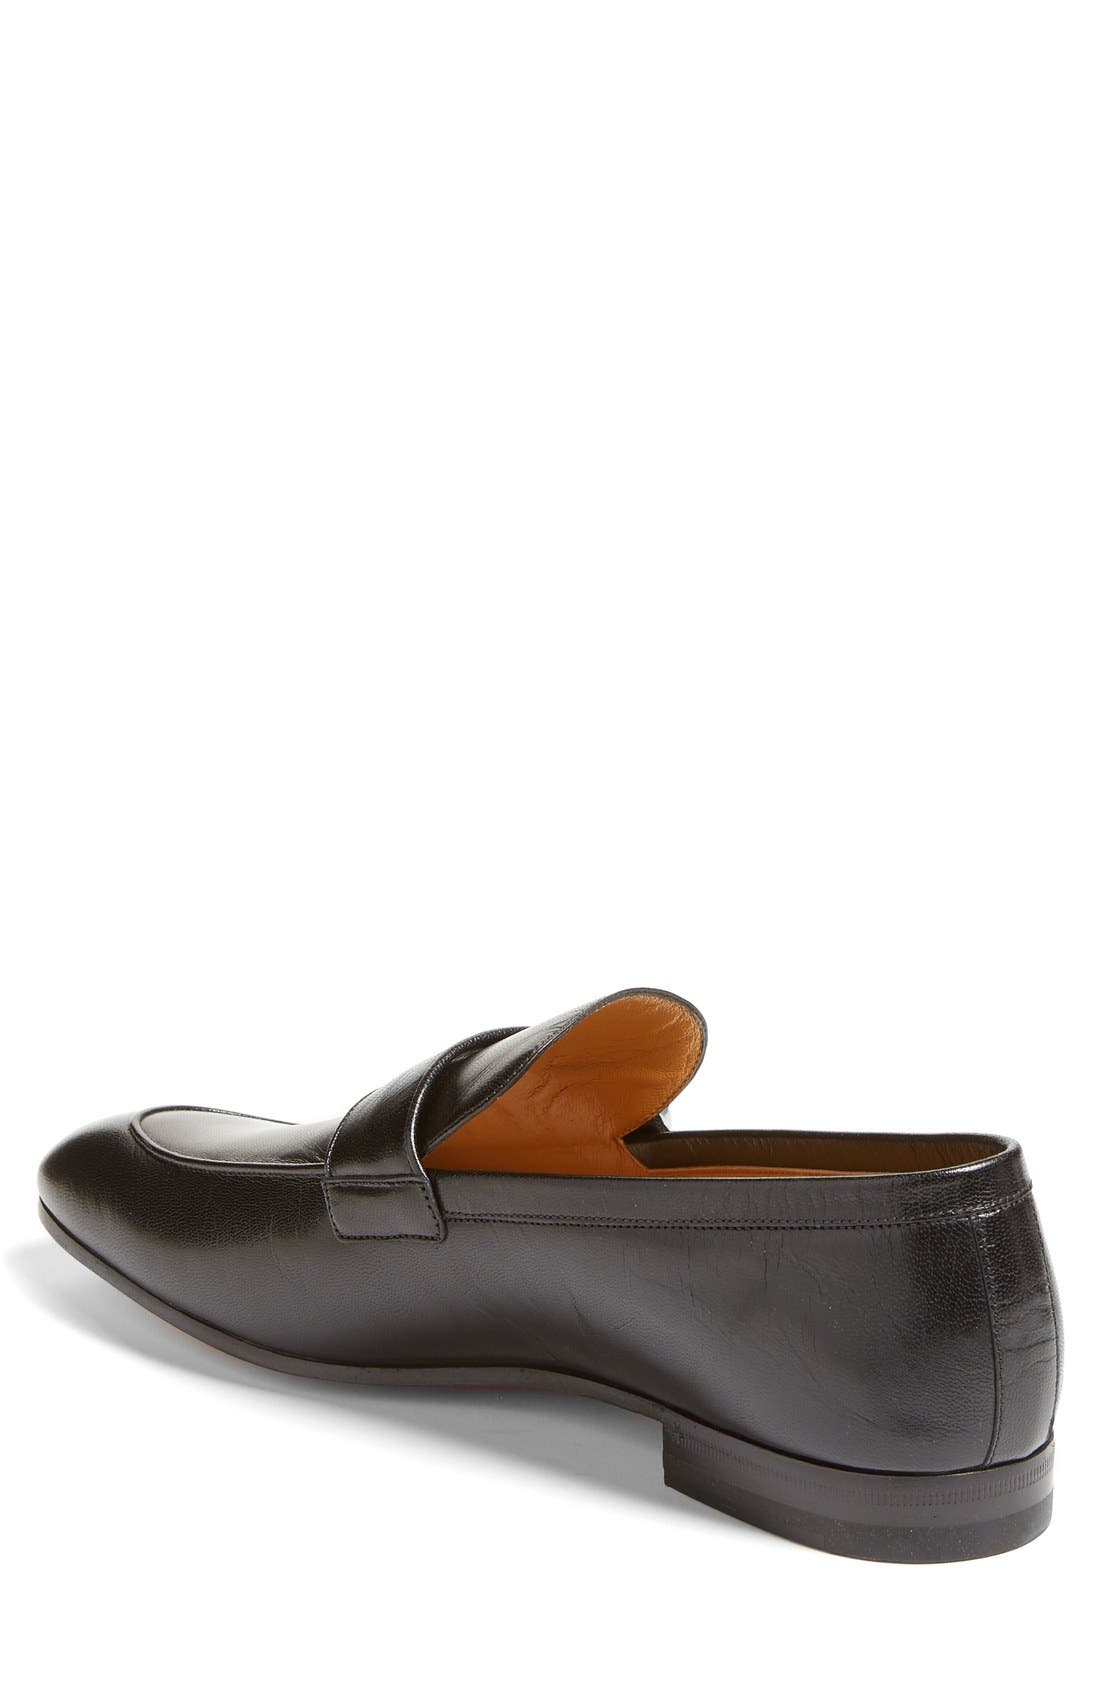 Donnie Bit Loafer,                             Alternate thumbnail 31, color,